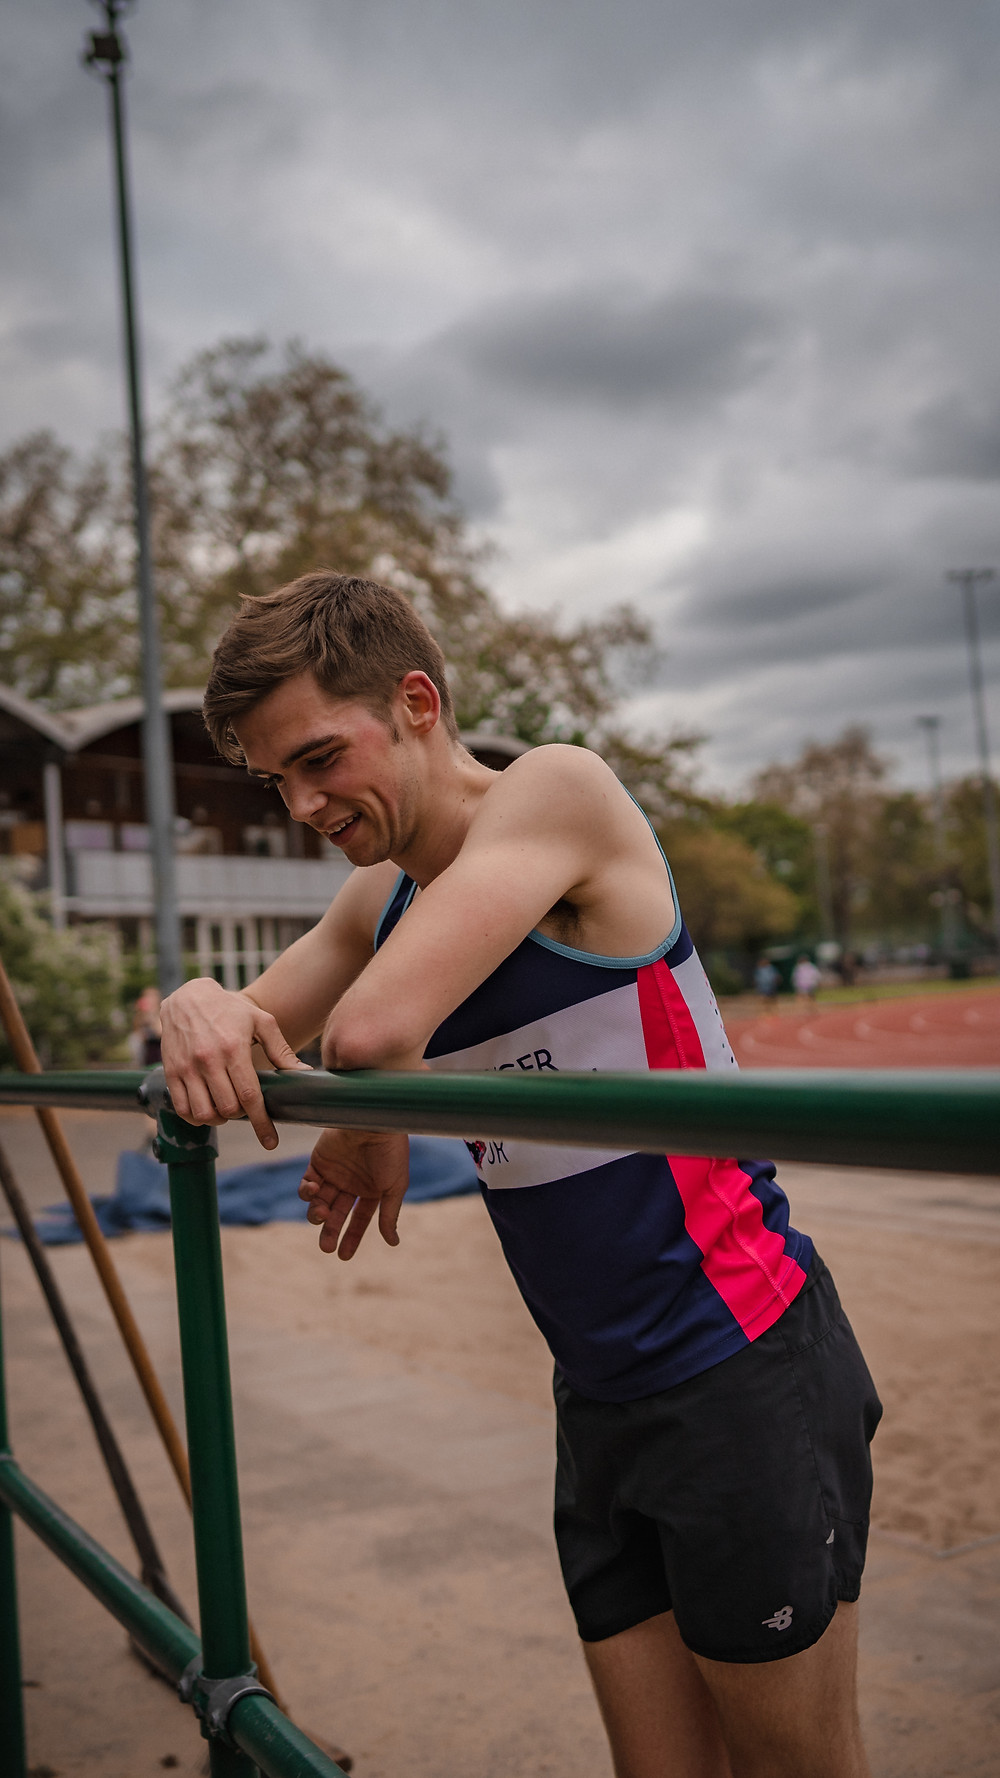 Jim Rijks of The Stable and Belgrave Harriers rests after running a track session on the Battersea Park Millennium Arena track